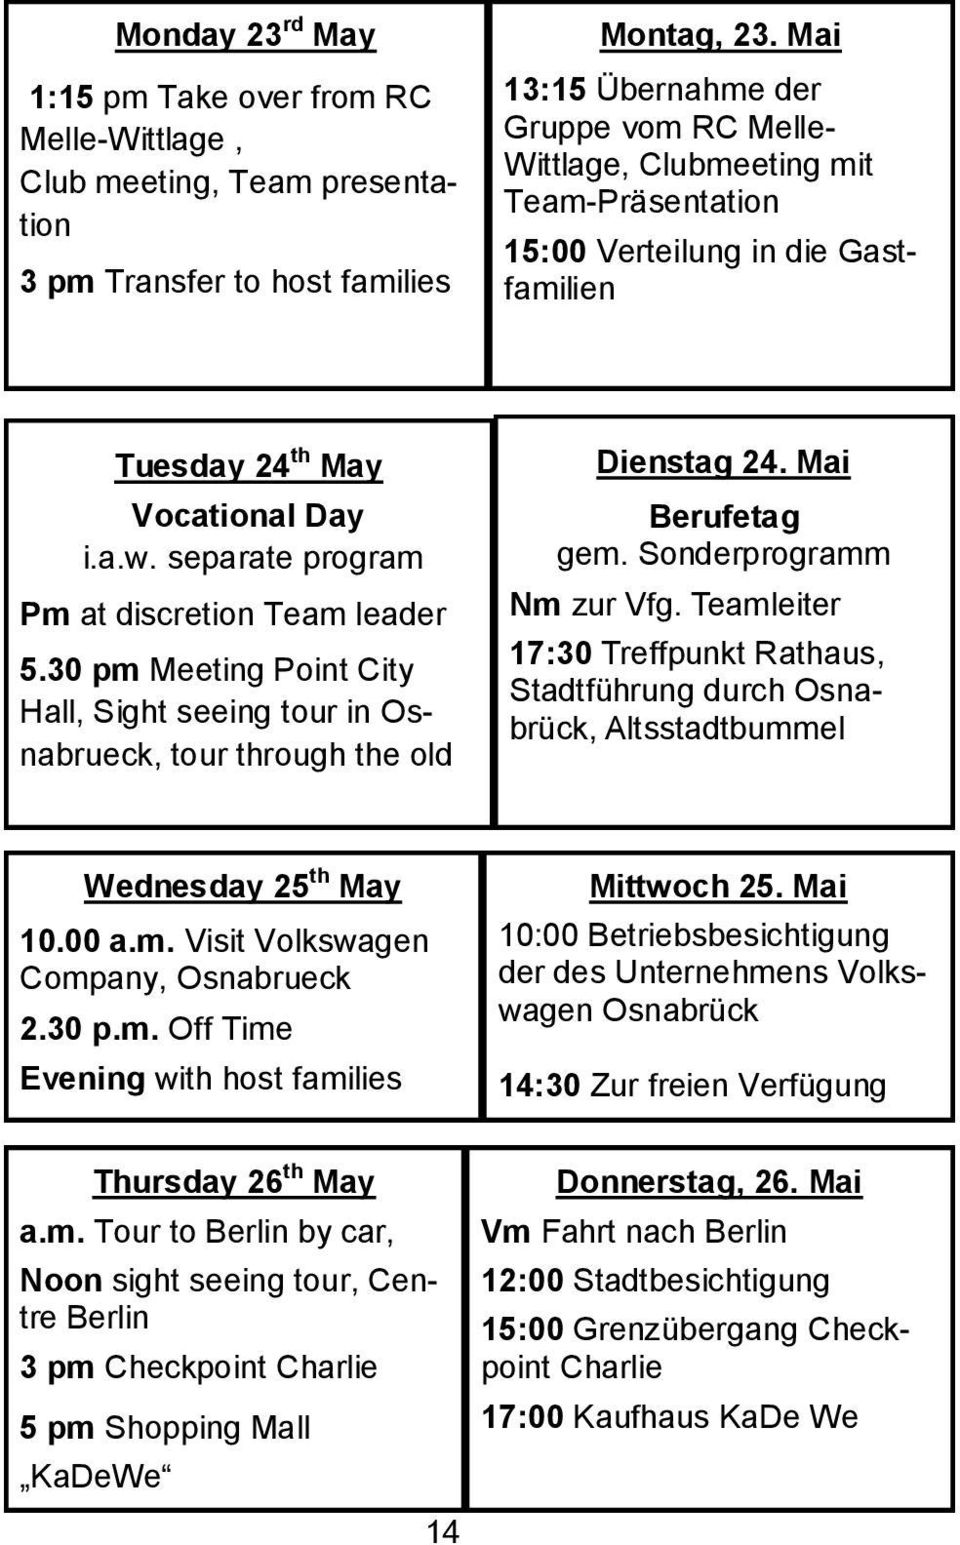 separate program Pm at discretion Team leader 5.30 pm Meeting Point City Hall, Sight seeing tour in Osnabrueck, tour through the old Dienstag 24. Mai Berufetag gem. Sonderprogramm Nm zur Vfg.